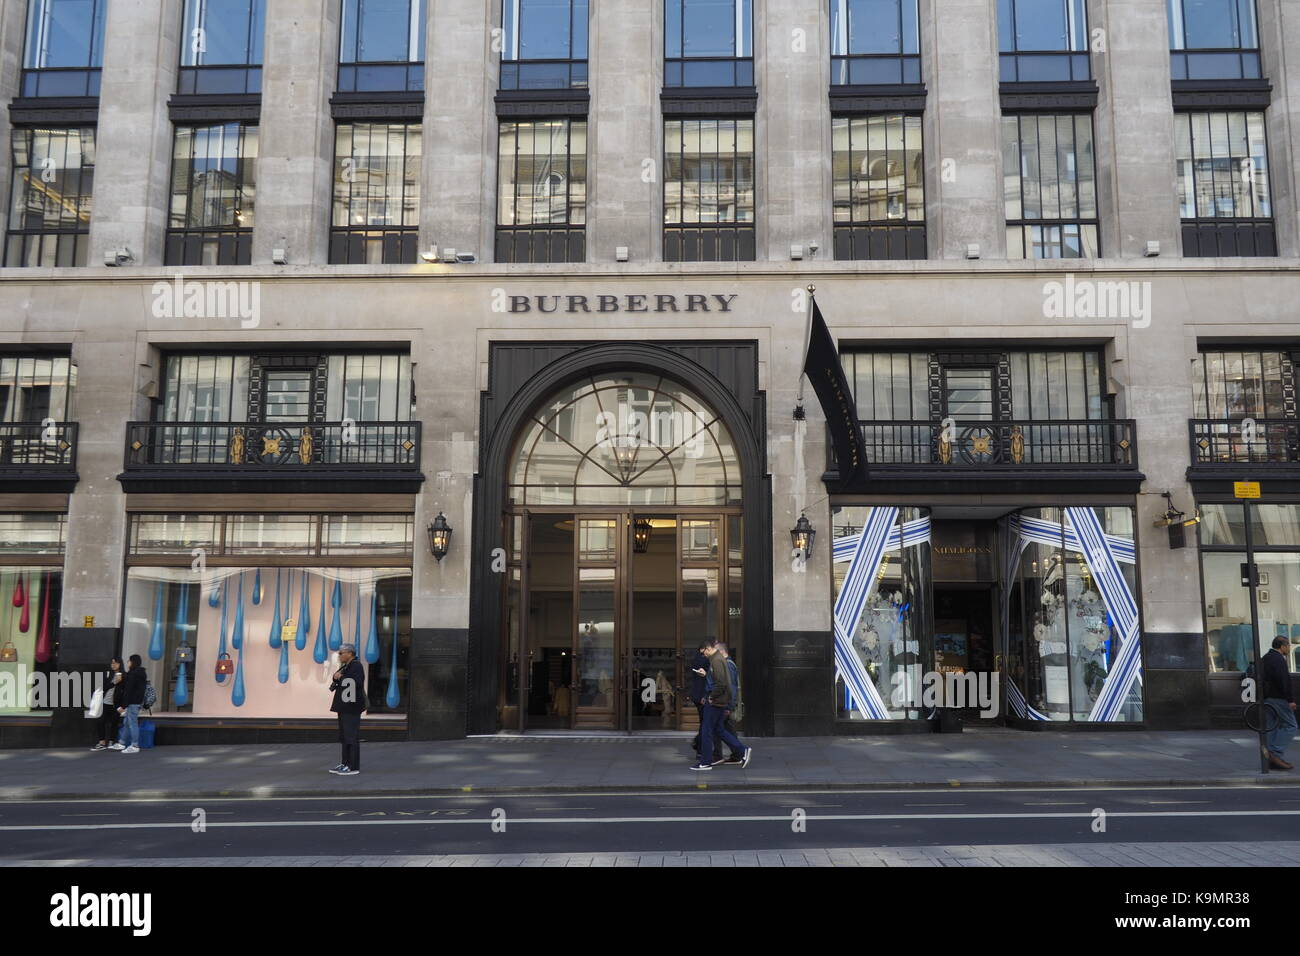 Burberry Regent Street Stock Photos & Burberry Regent ...